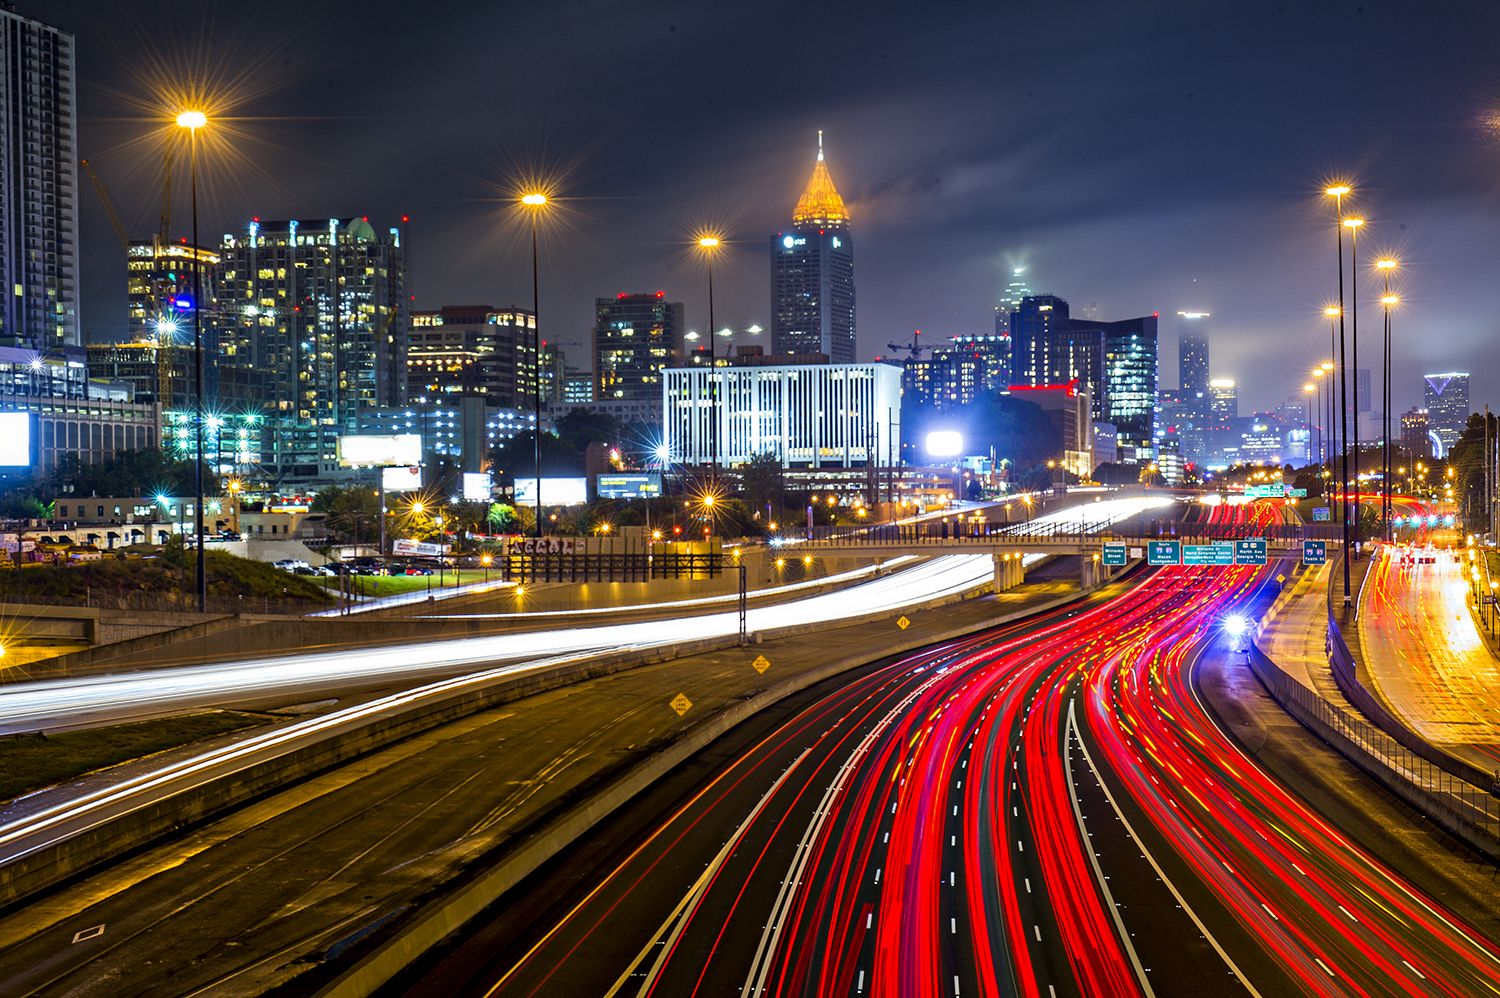 The skyline of midtown Atlanta is shown in the distance with traffic moving fast in the foreground.